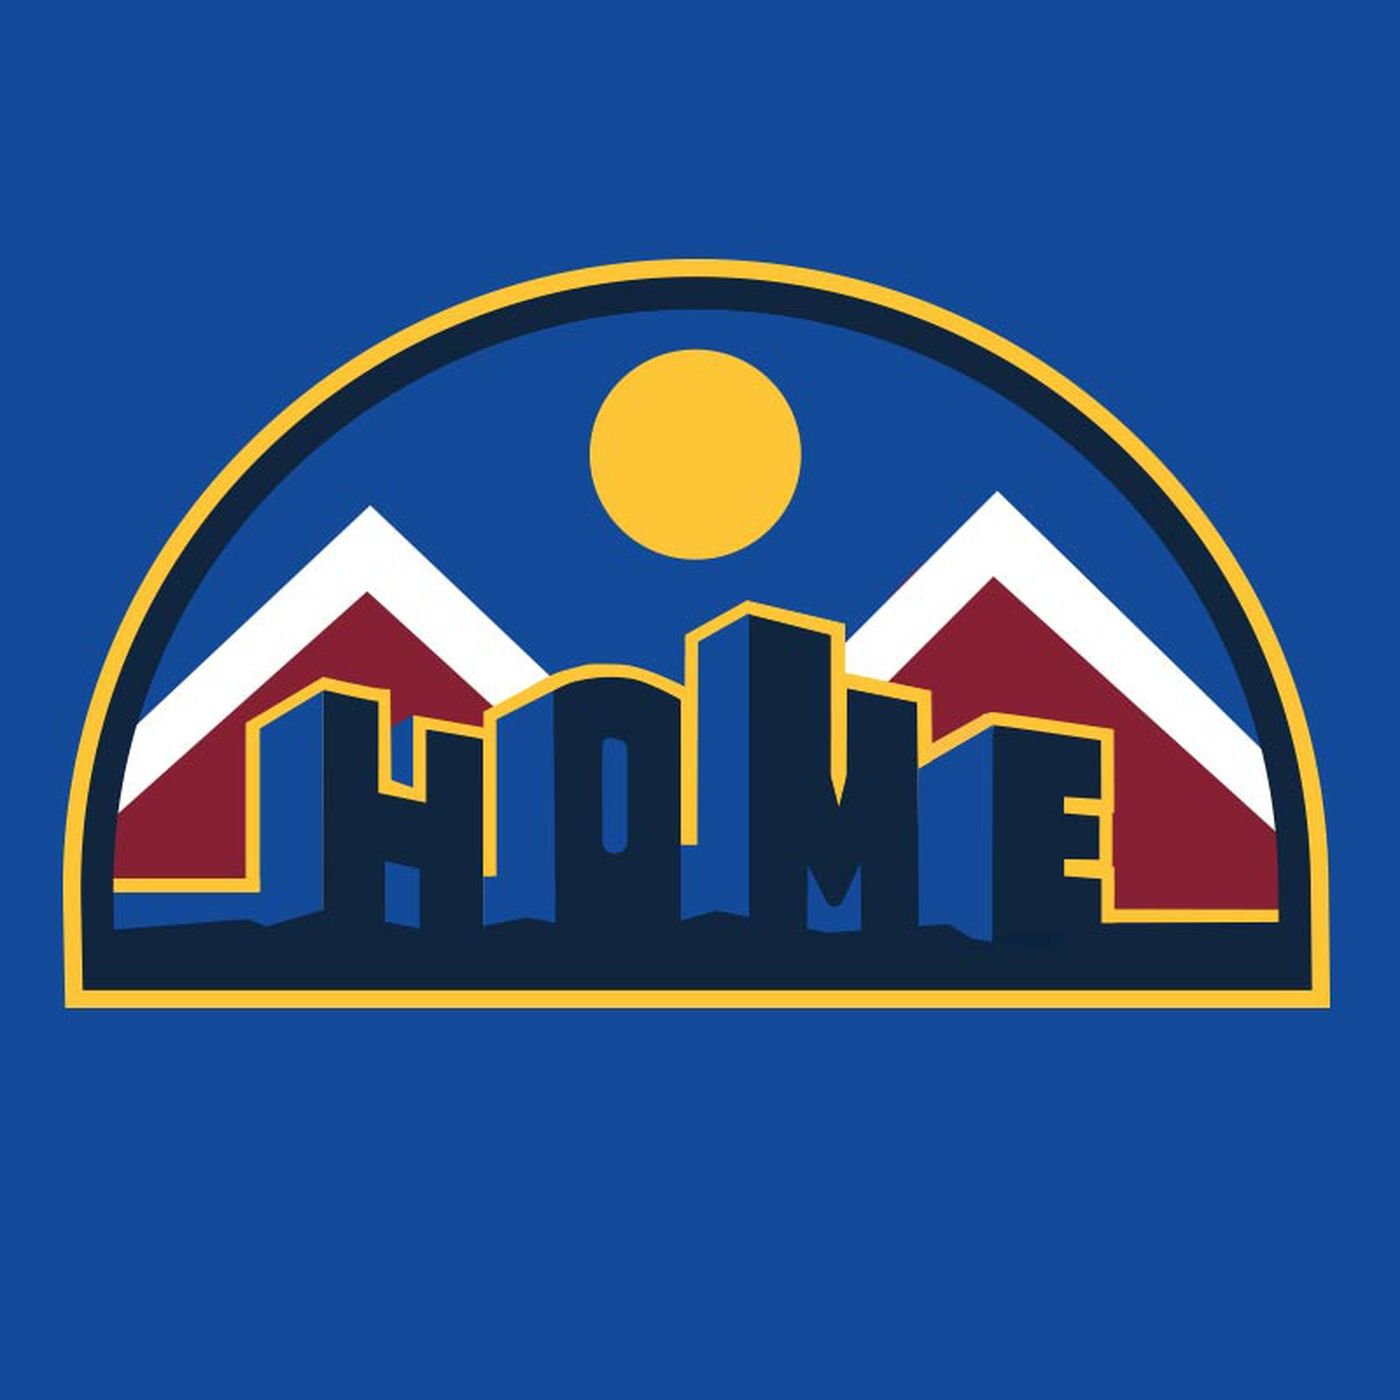 """buy popular 8d721 ddacf The new Denver Nuggets """"HOME"""" t-shirt from D-Line CO is the ..."""